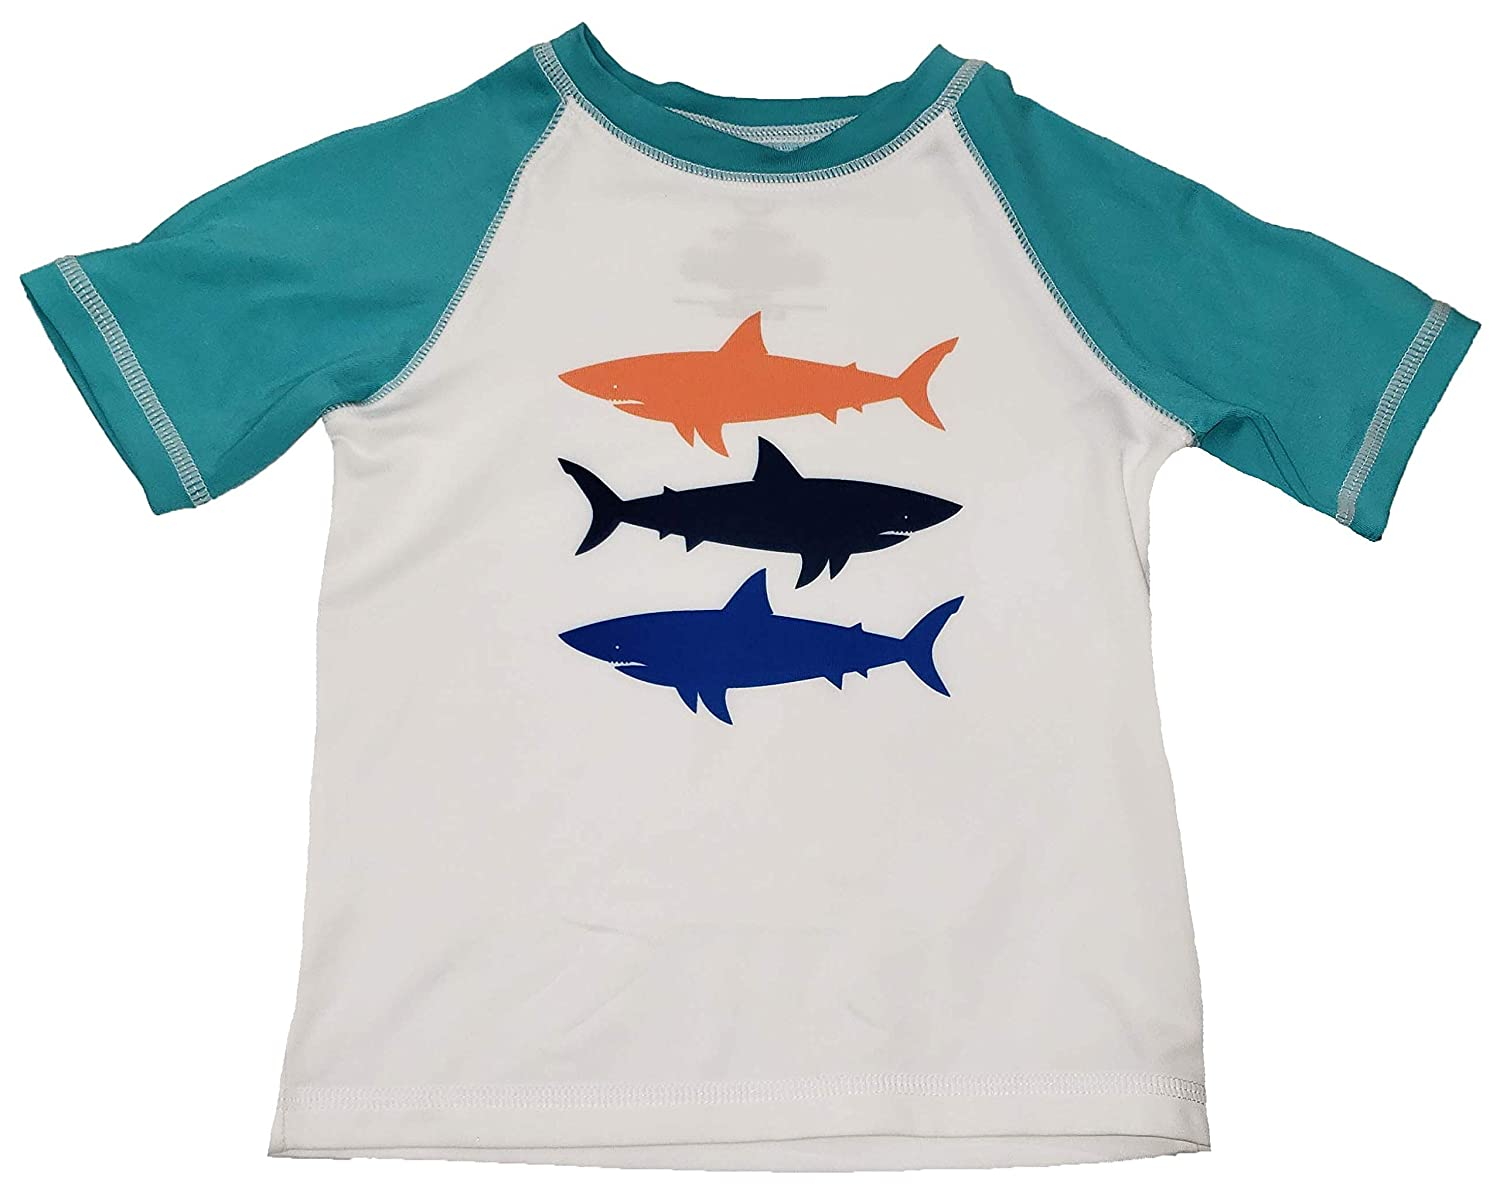 Toddler Boys Shark Rash Guard Shirt